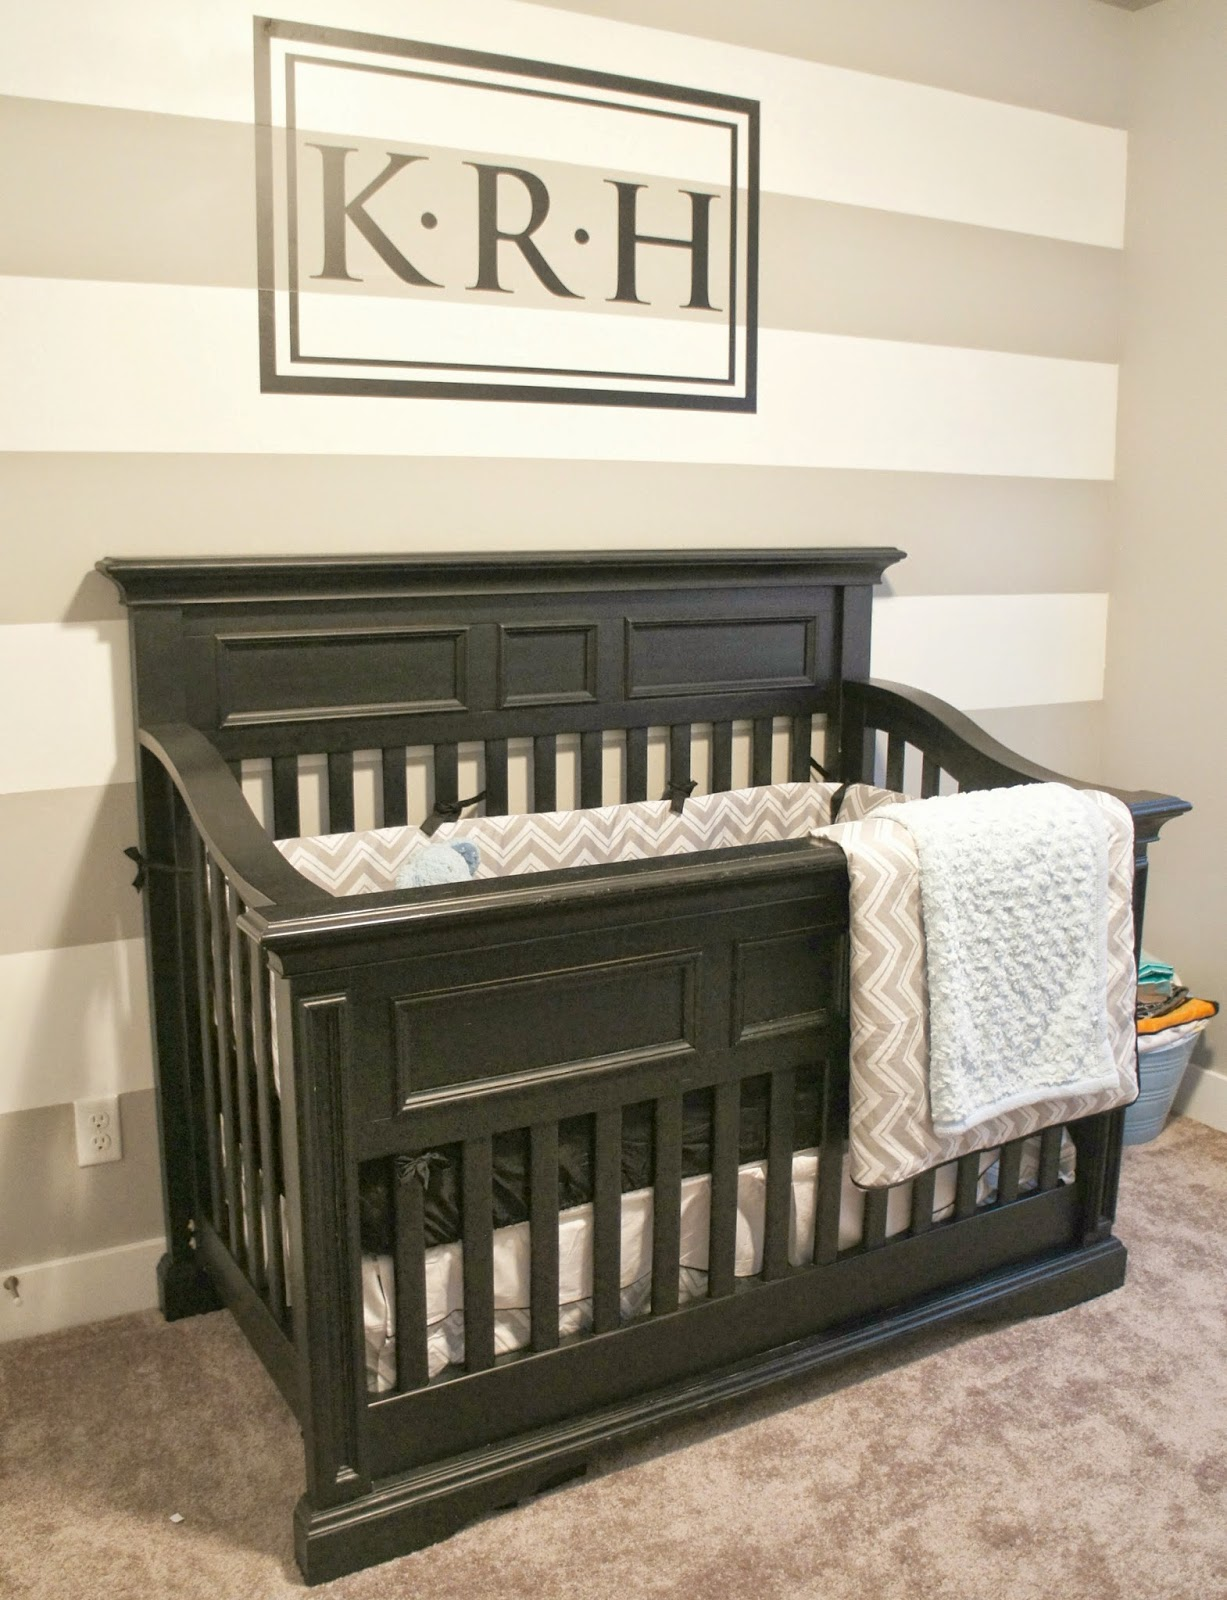 Fashion Amp Lifestyle Krew S Nursery